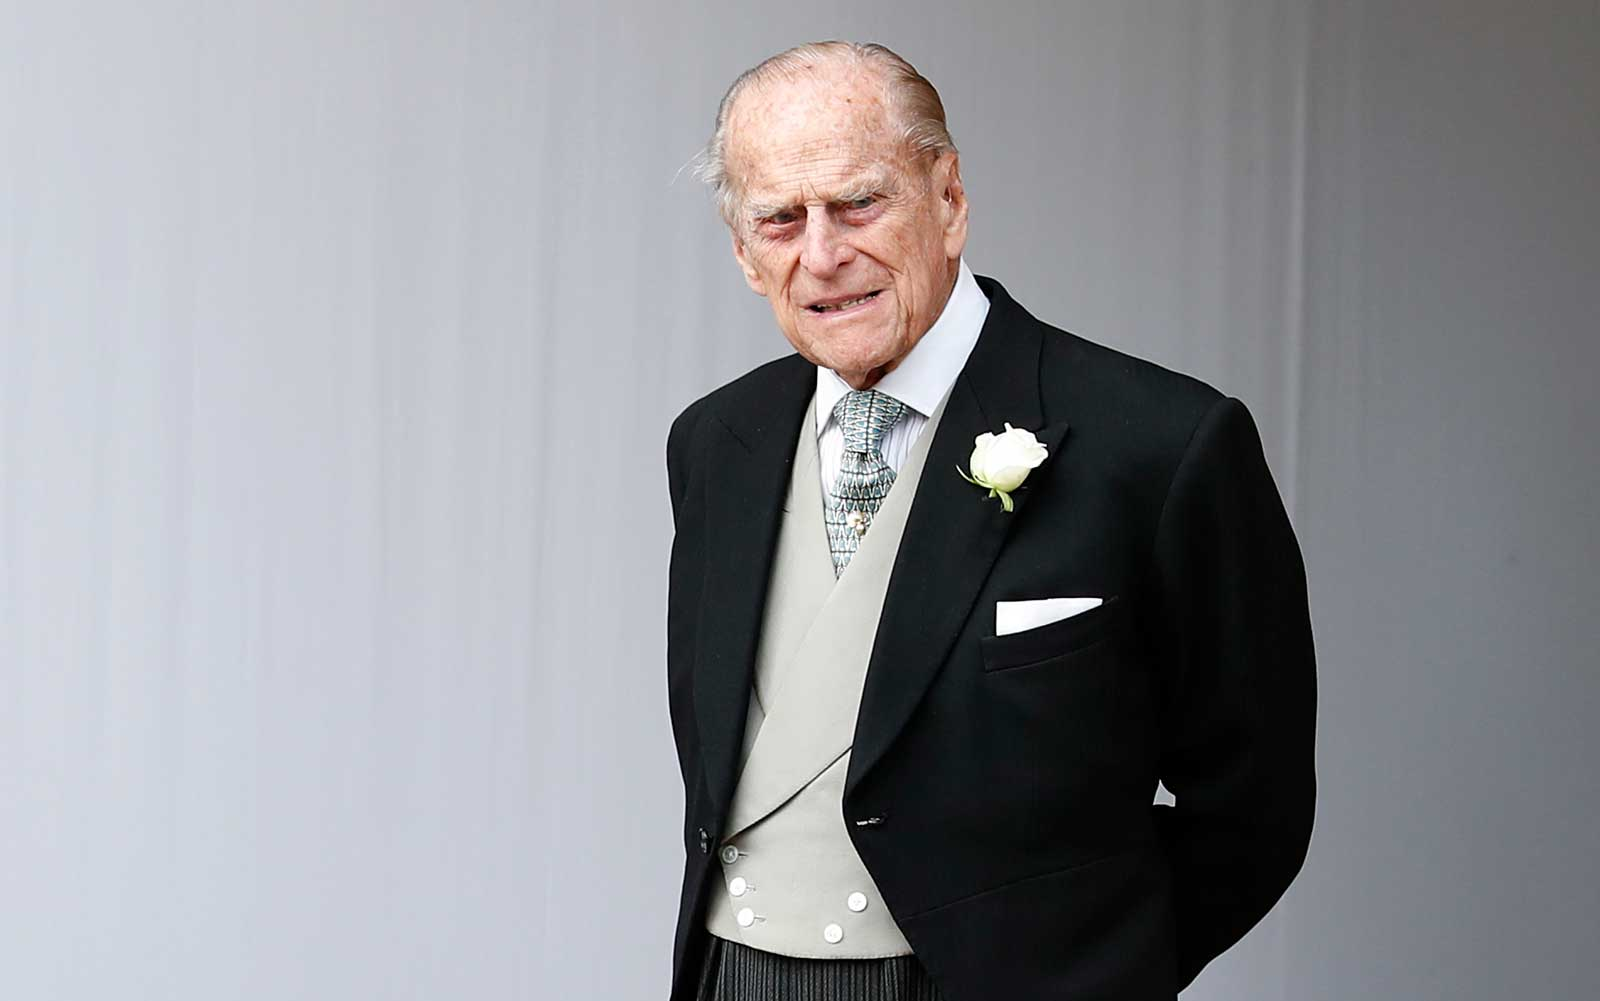 Prince Philip Said Economy Class 'Sounds Ghastly' and We're Crying All the Way to the Back of the Plane